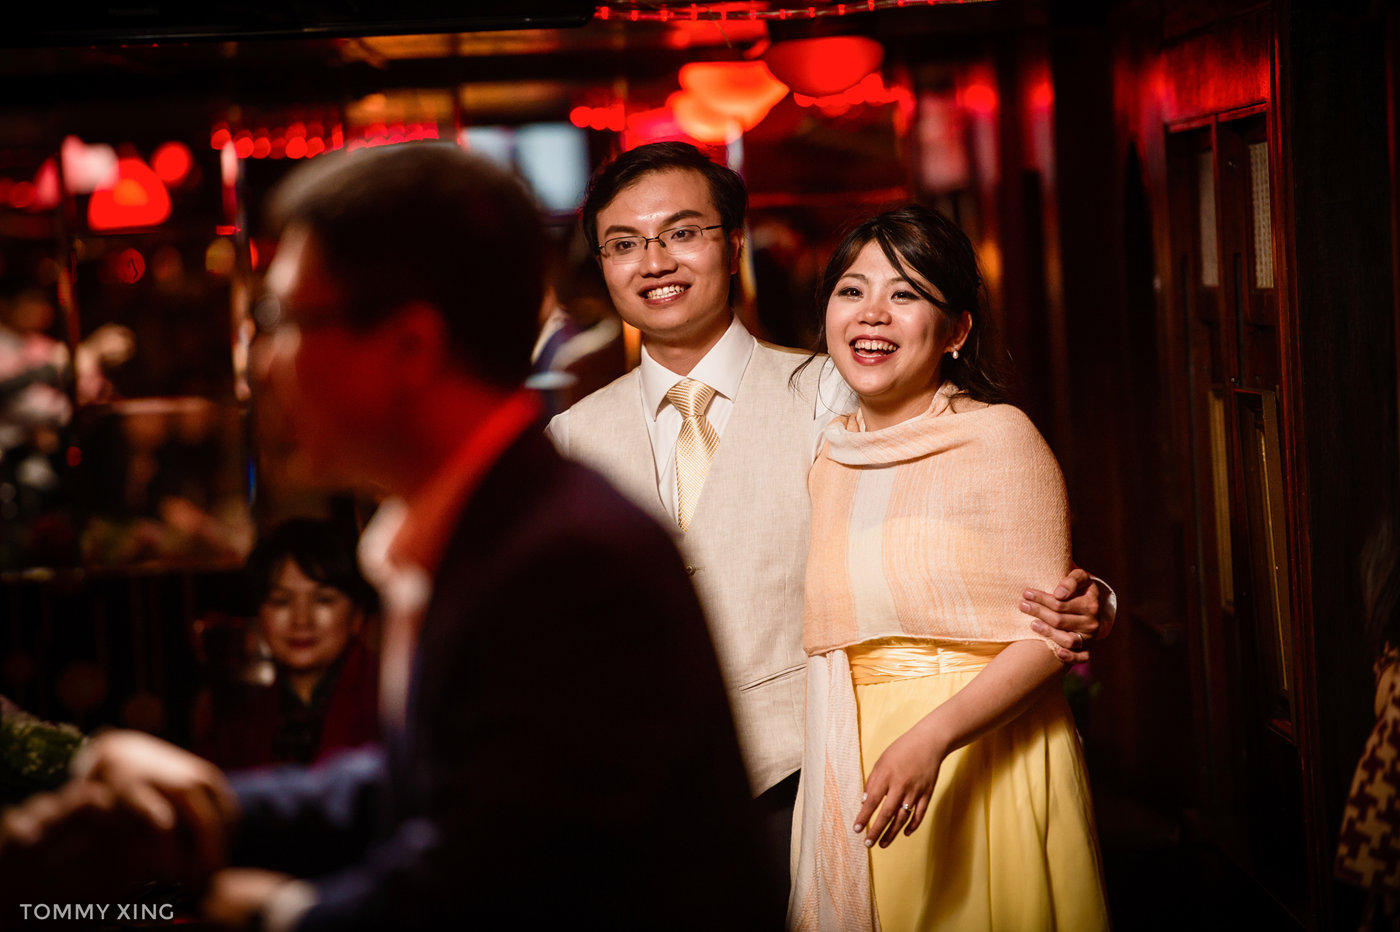 Seattle Wedding and pre wedding Los Angeles Tommy Xing Photography 西雅图洛杉矶旧金山婚礼婚纱照摄影师 205.jpg